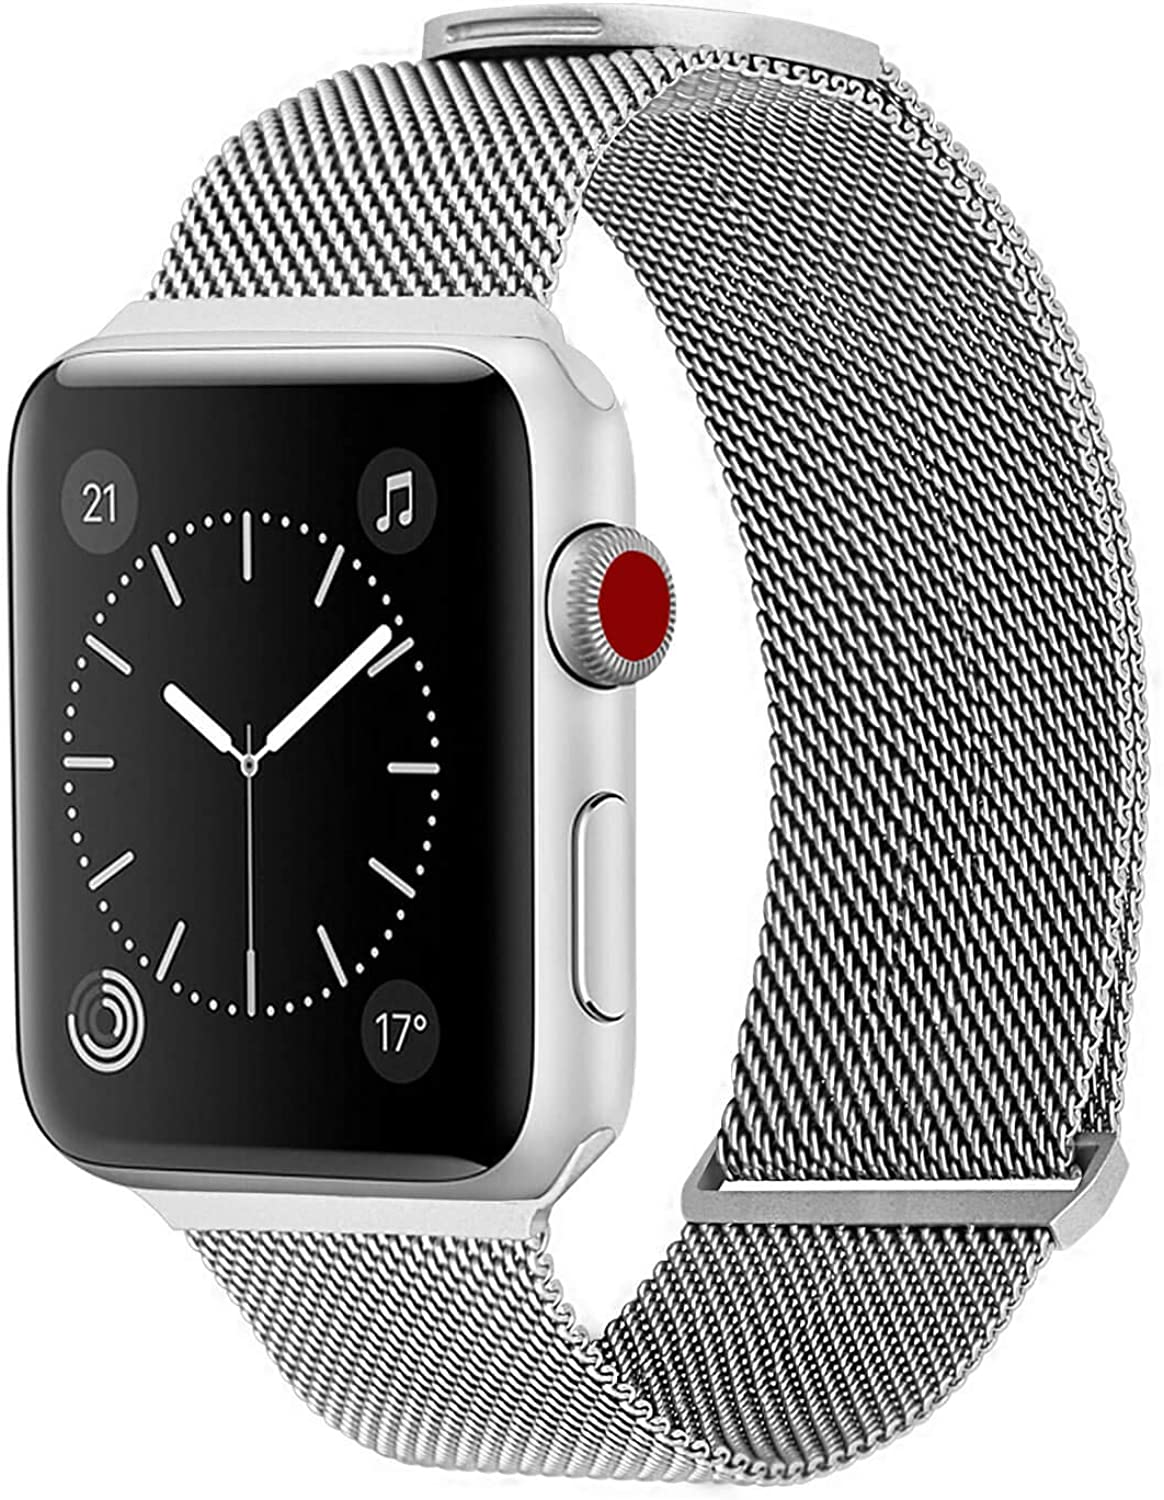 WareWel - Stainless Steel Apple Watch Compatible Bands for Men & Women Quick Install Replacement Apple Watch Bracelet Bands Premium Finish & Sturdy Closure 38mm 40mm 42mm 44mm